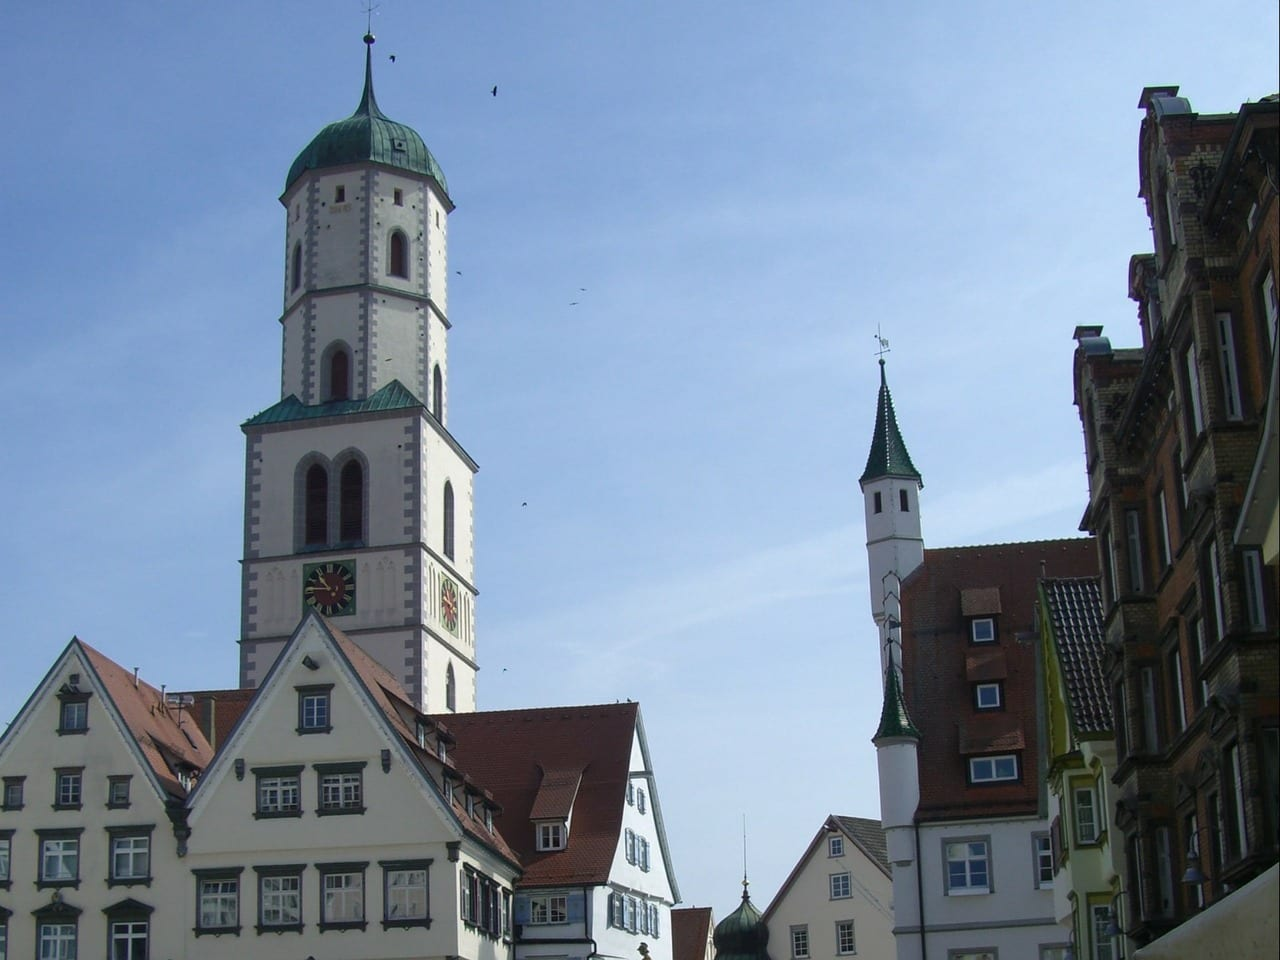 Biberach, Germany - a nice town to visit when cycling the Donau-Bodensee Radweg